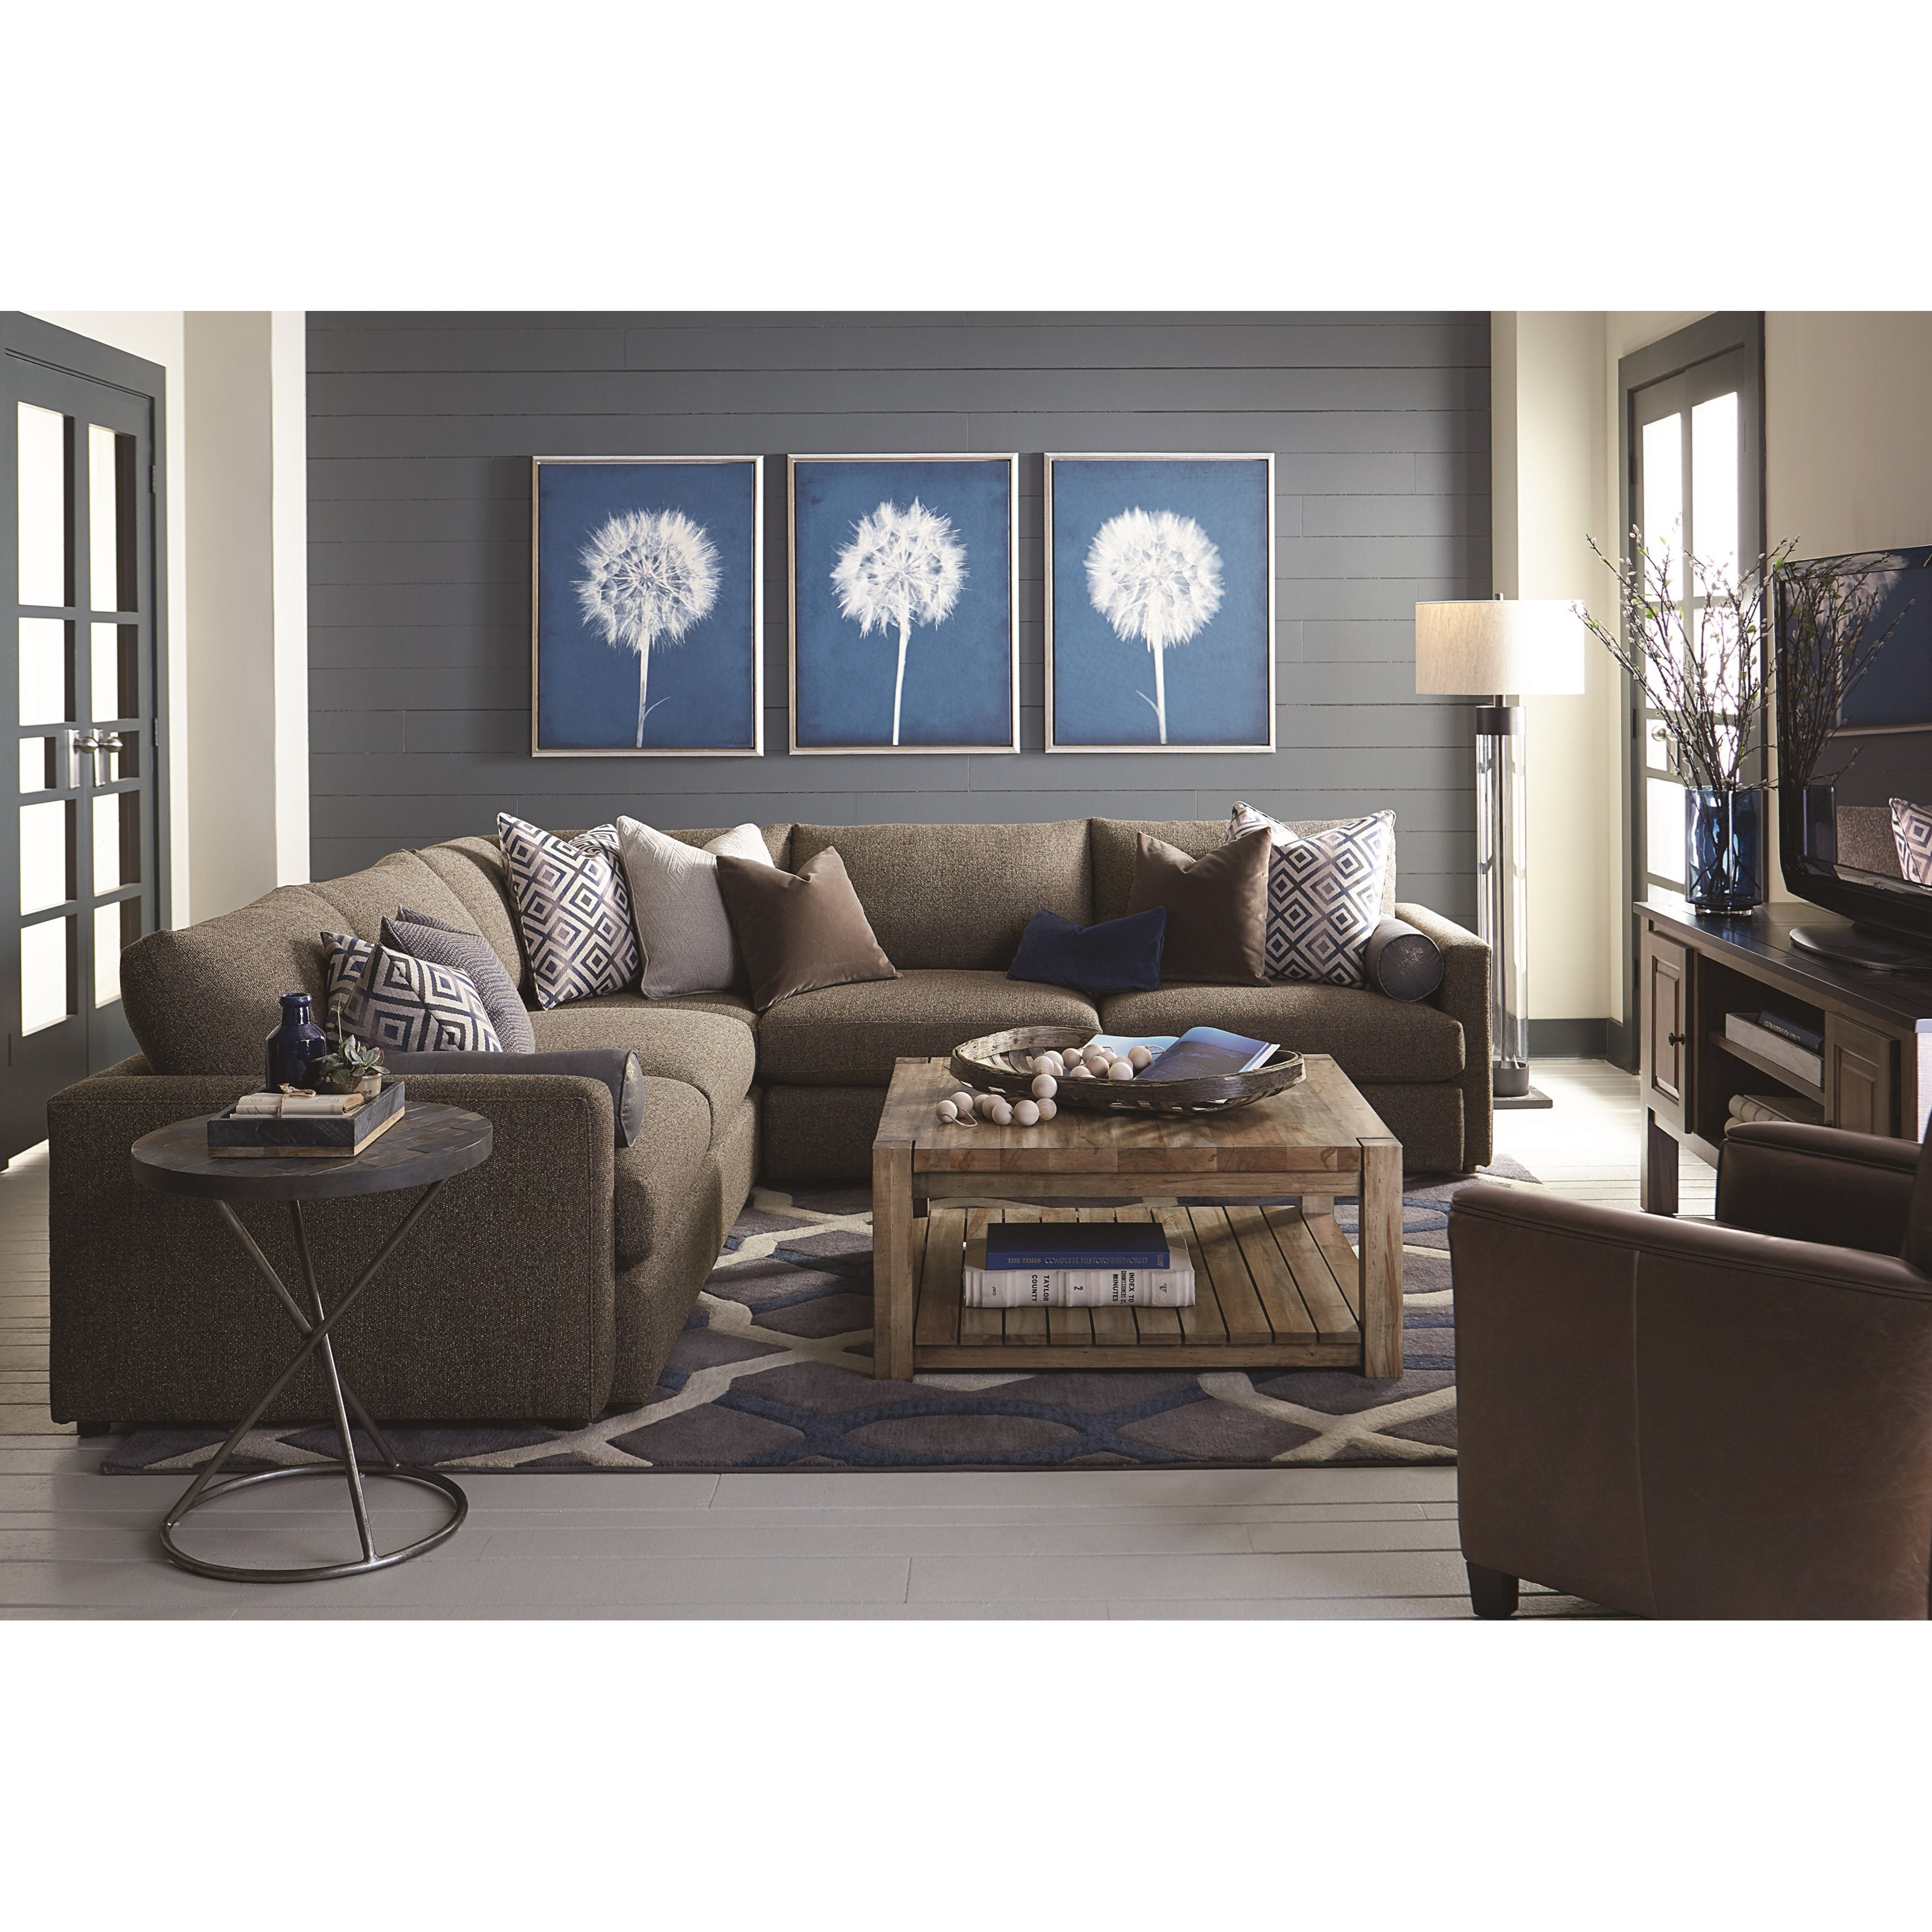 Bassett Home Furnishings: Bassett Allure Contemporary Sectional With 4 Seats